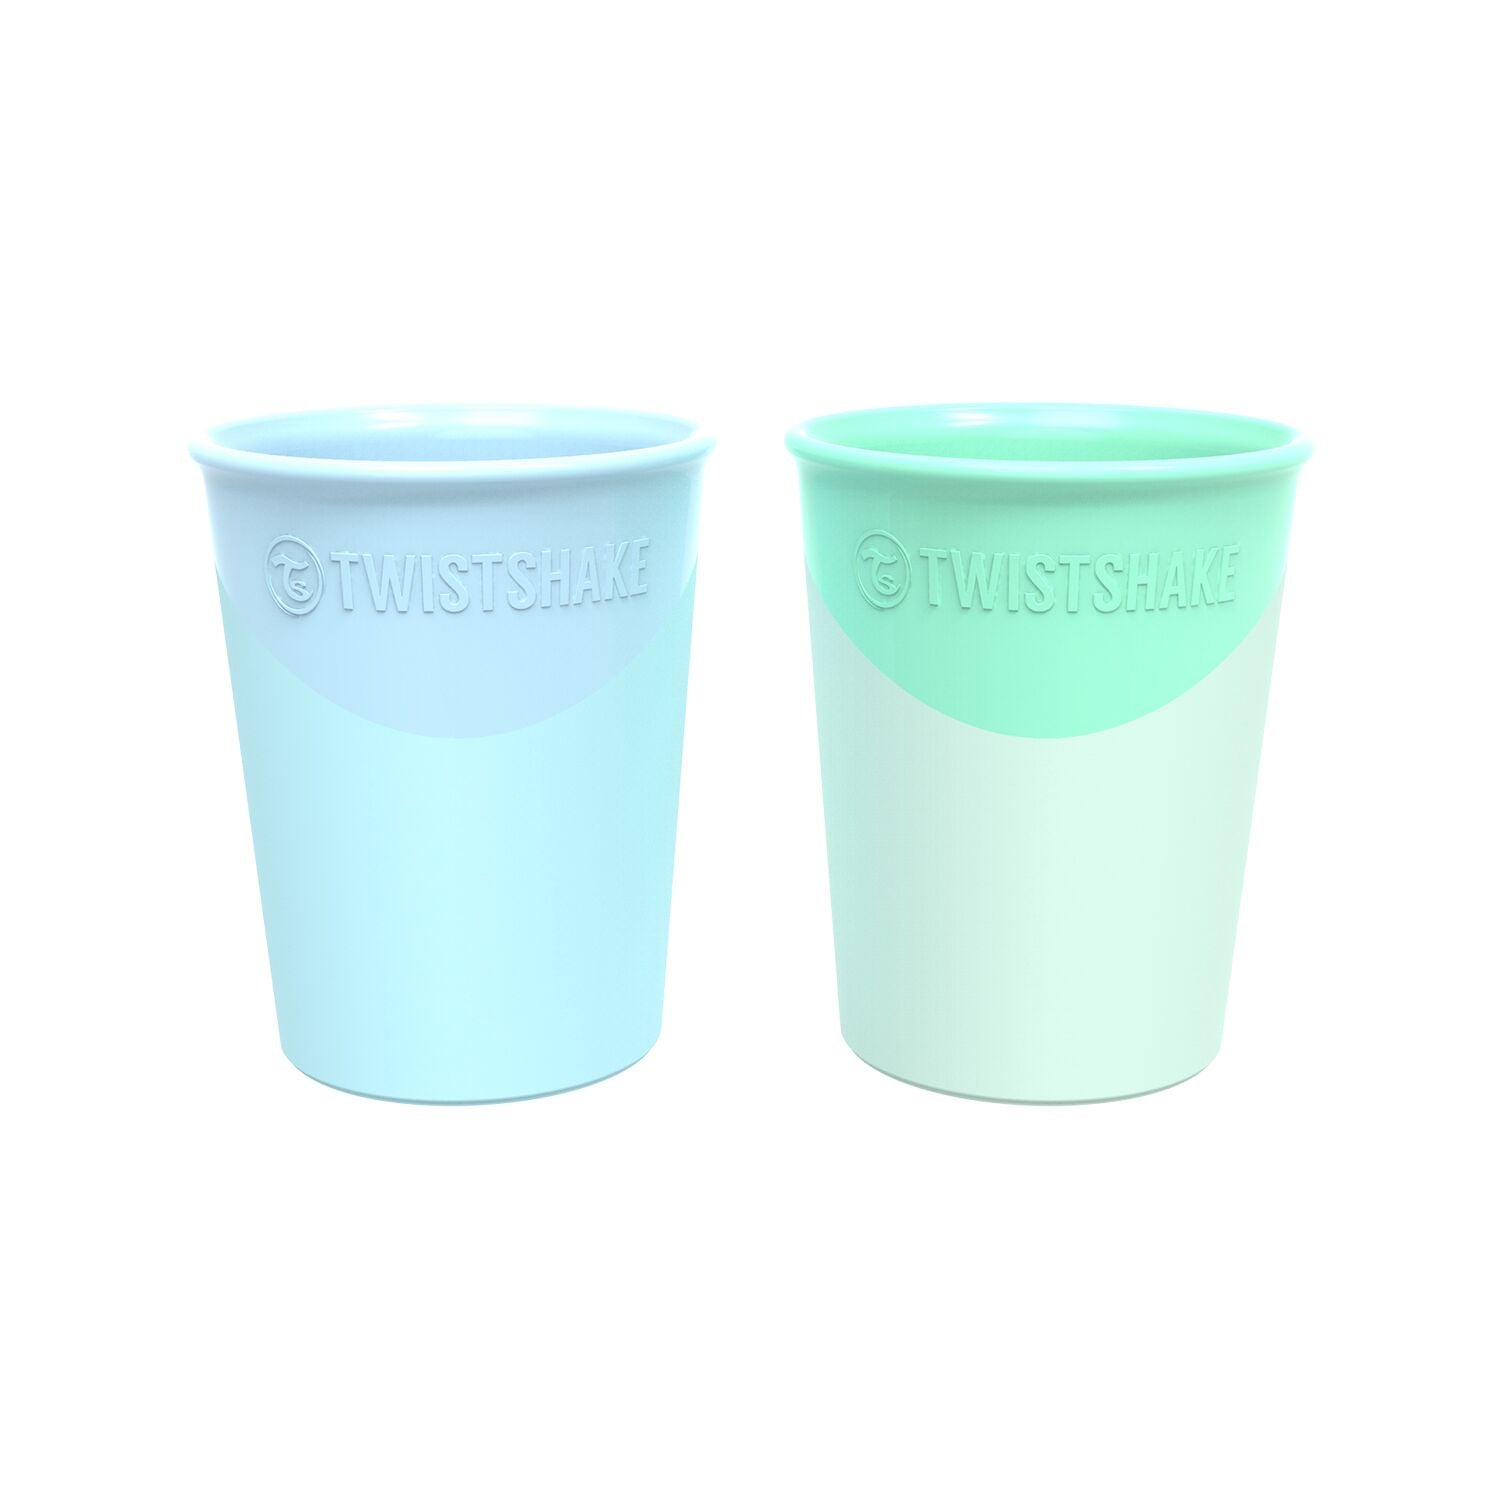 Twistshake Becher 2er Set - Pastel Blue/Green